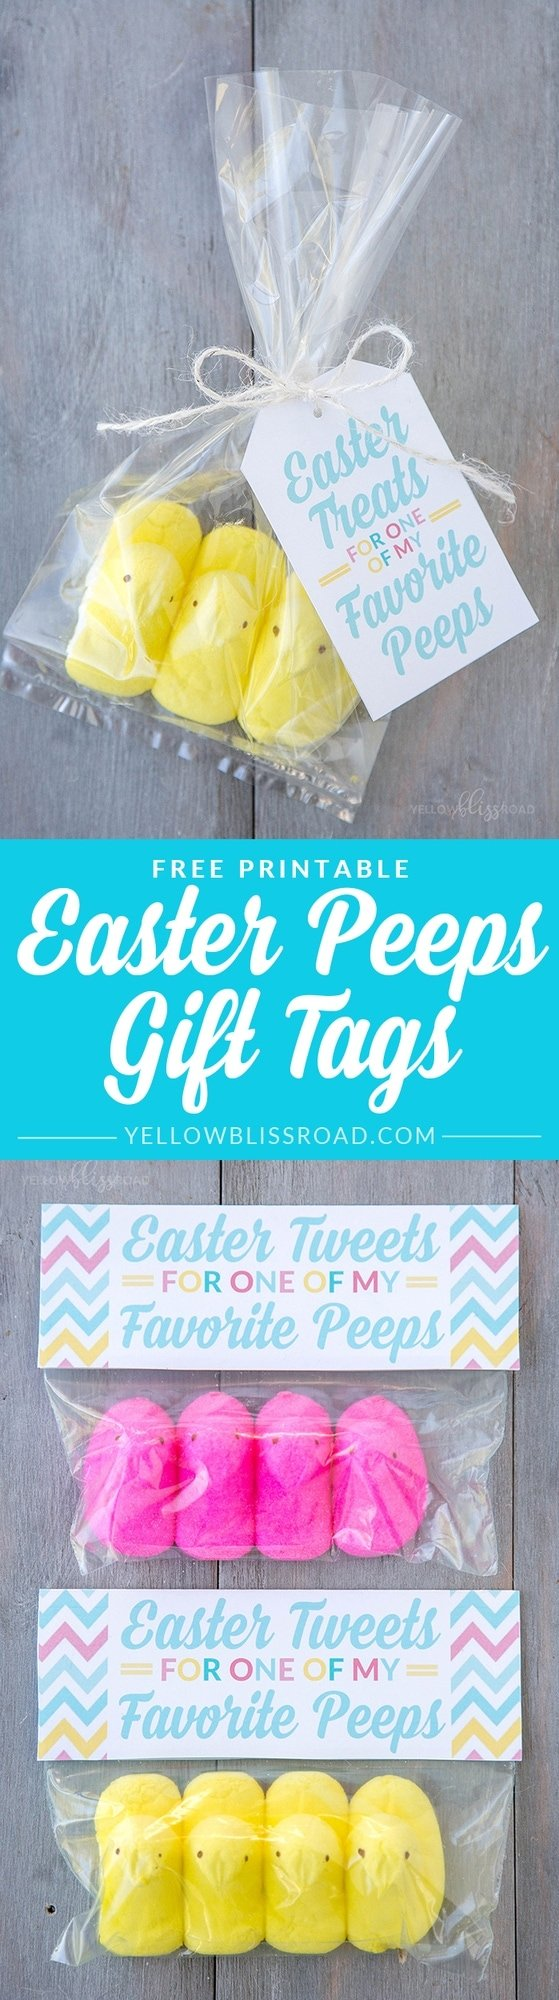 Peeps easter gift idea with free printables yellow bliss road free printable peeps easter gift tags use these free printable gift tags to make sweet negle Images